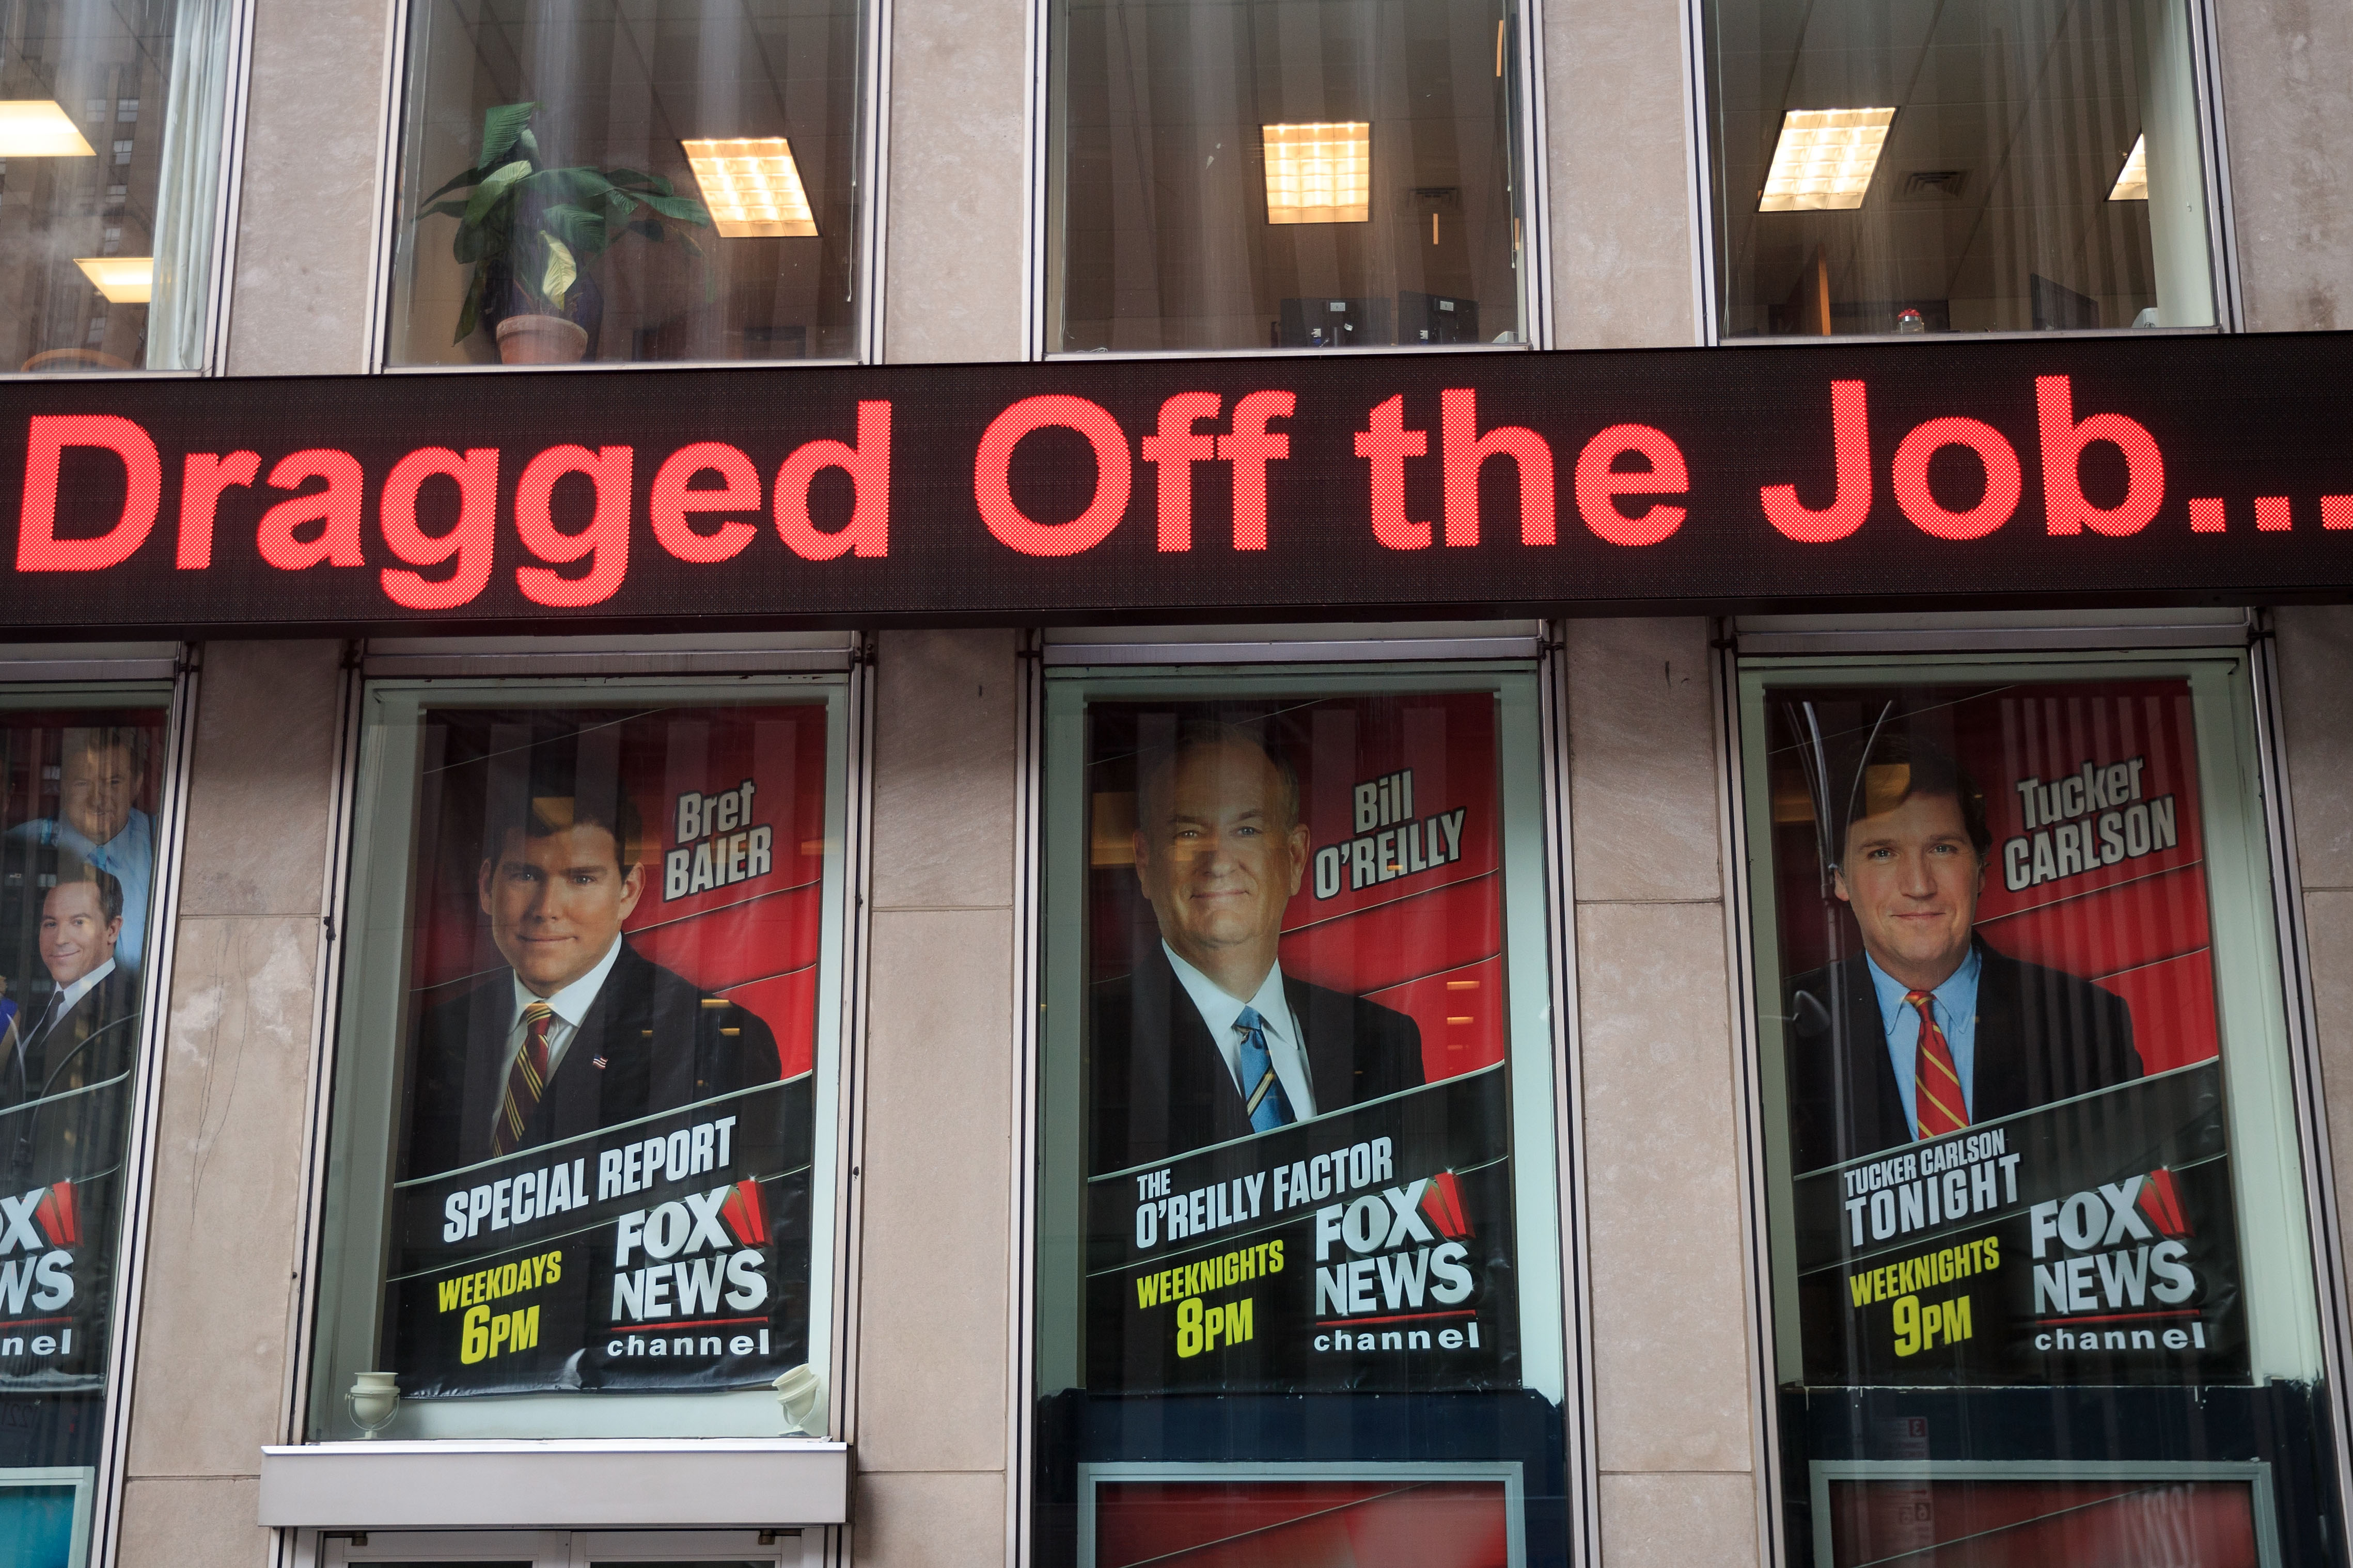 Fox News Executives Said To Be Considering Bill O'Reilly's Future With The Cable News Channel